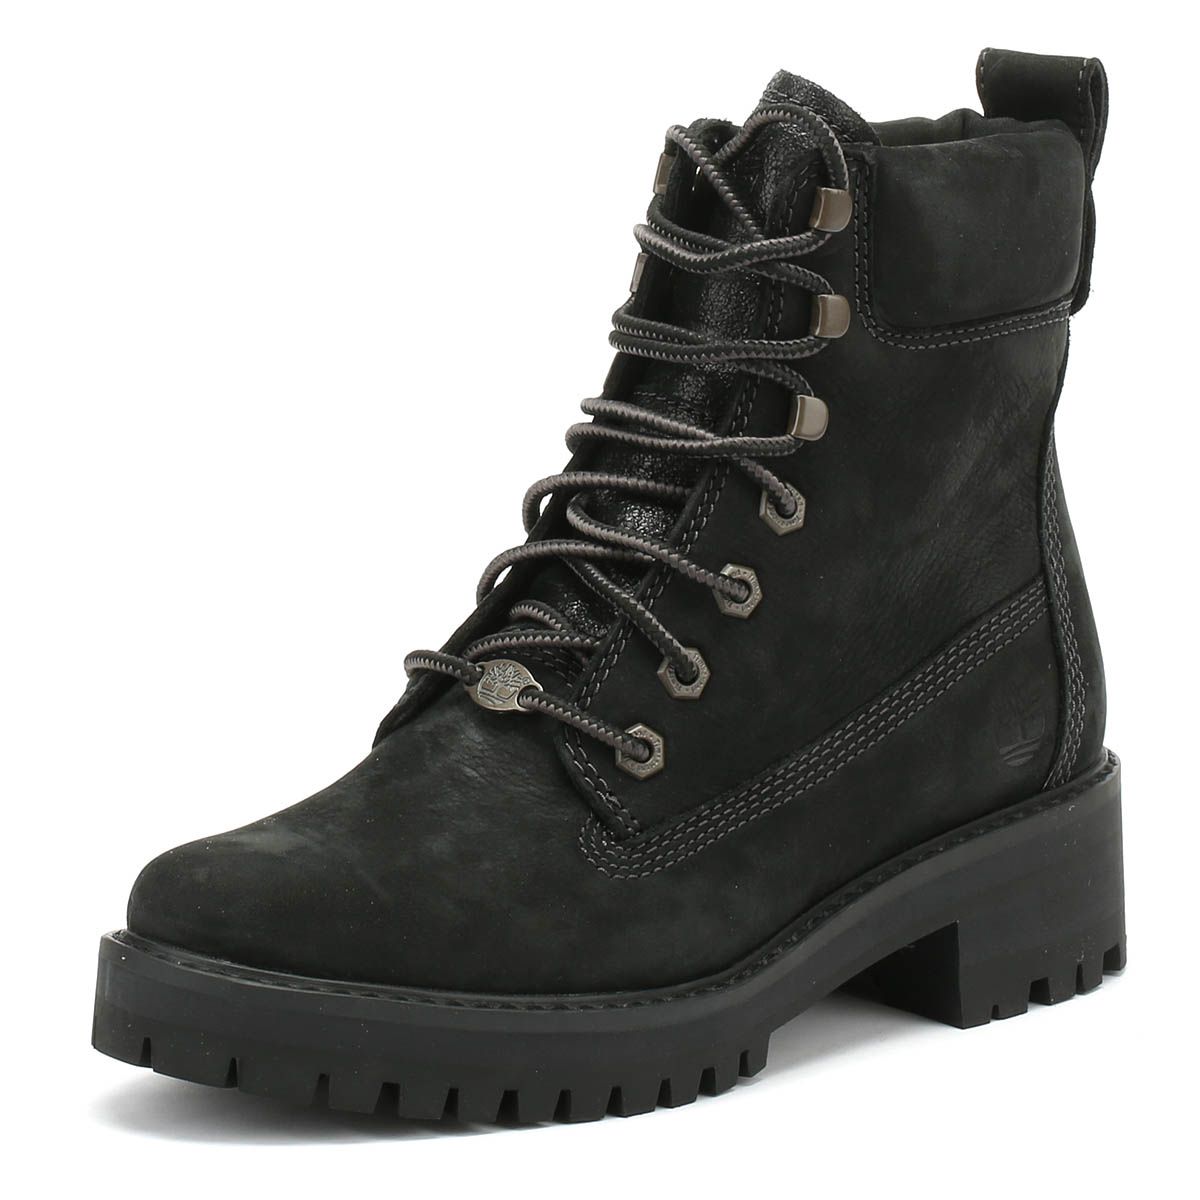 57af4979e112c Details about Timberland Womens Boots Black Courmayeur Valley Lace Up  Winter Ankle Shoes